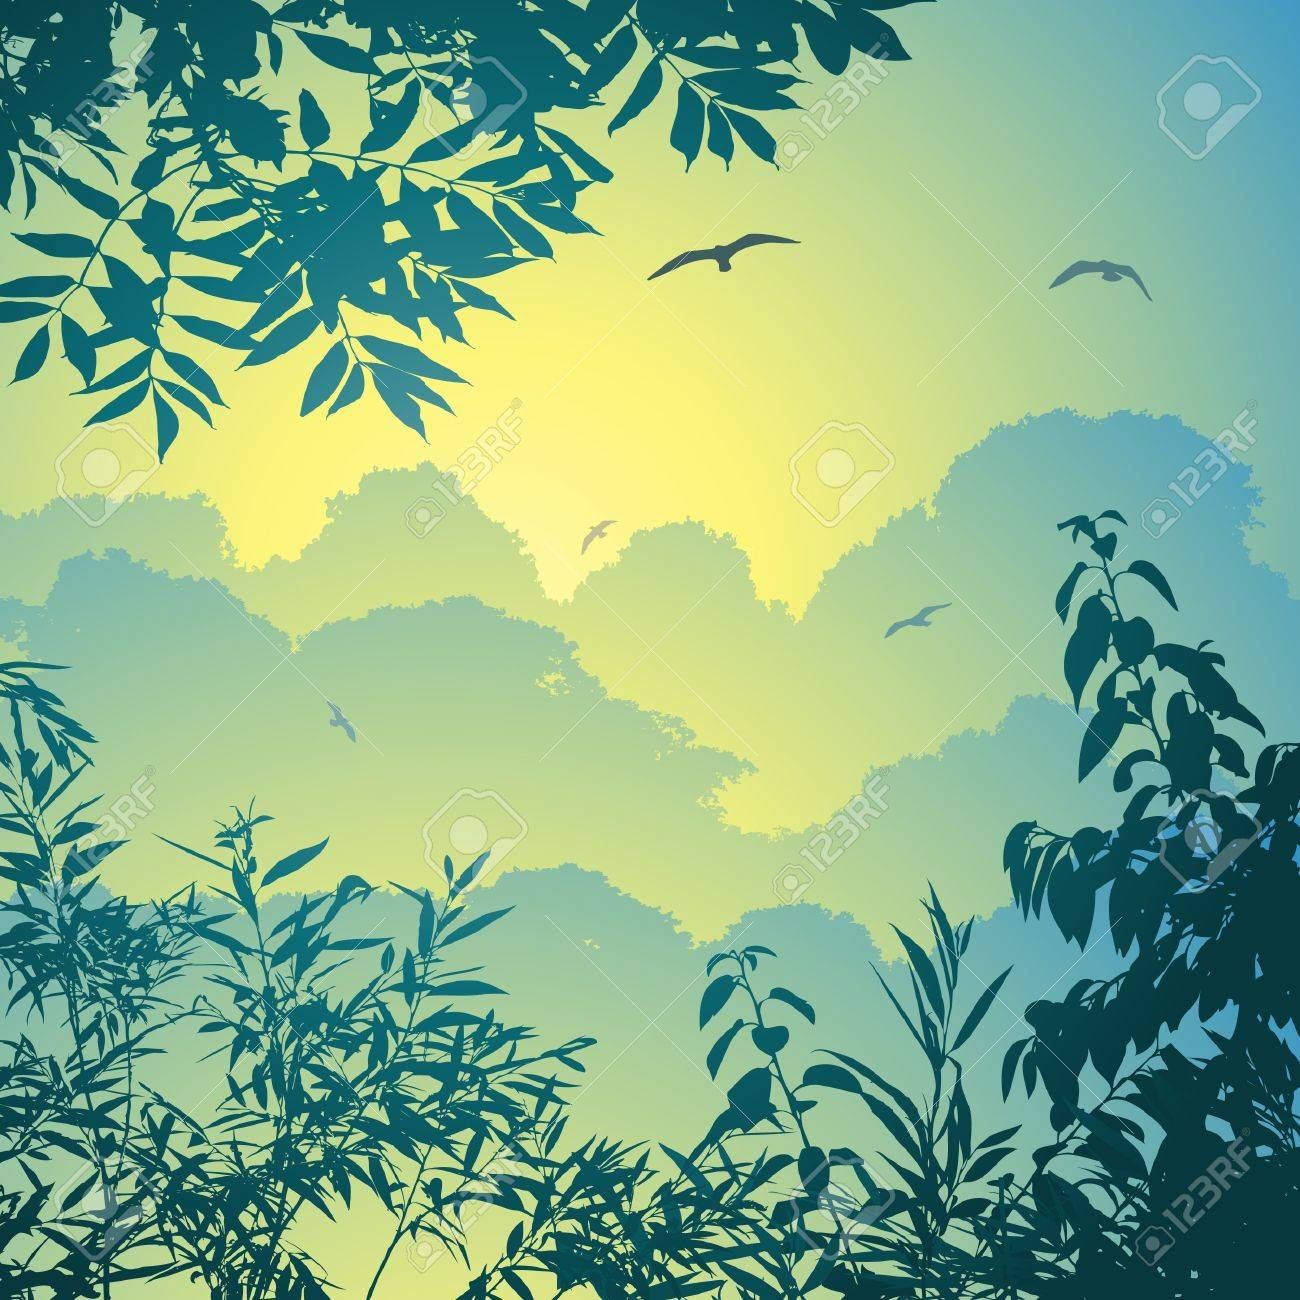 A Forest Landscape with Trees and Leaves Stock Vector - 9720829